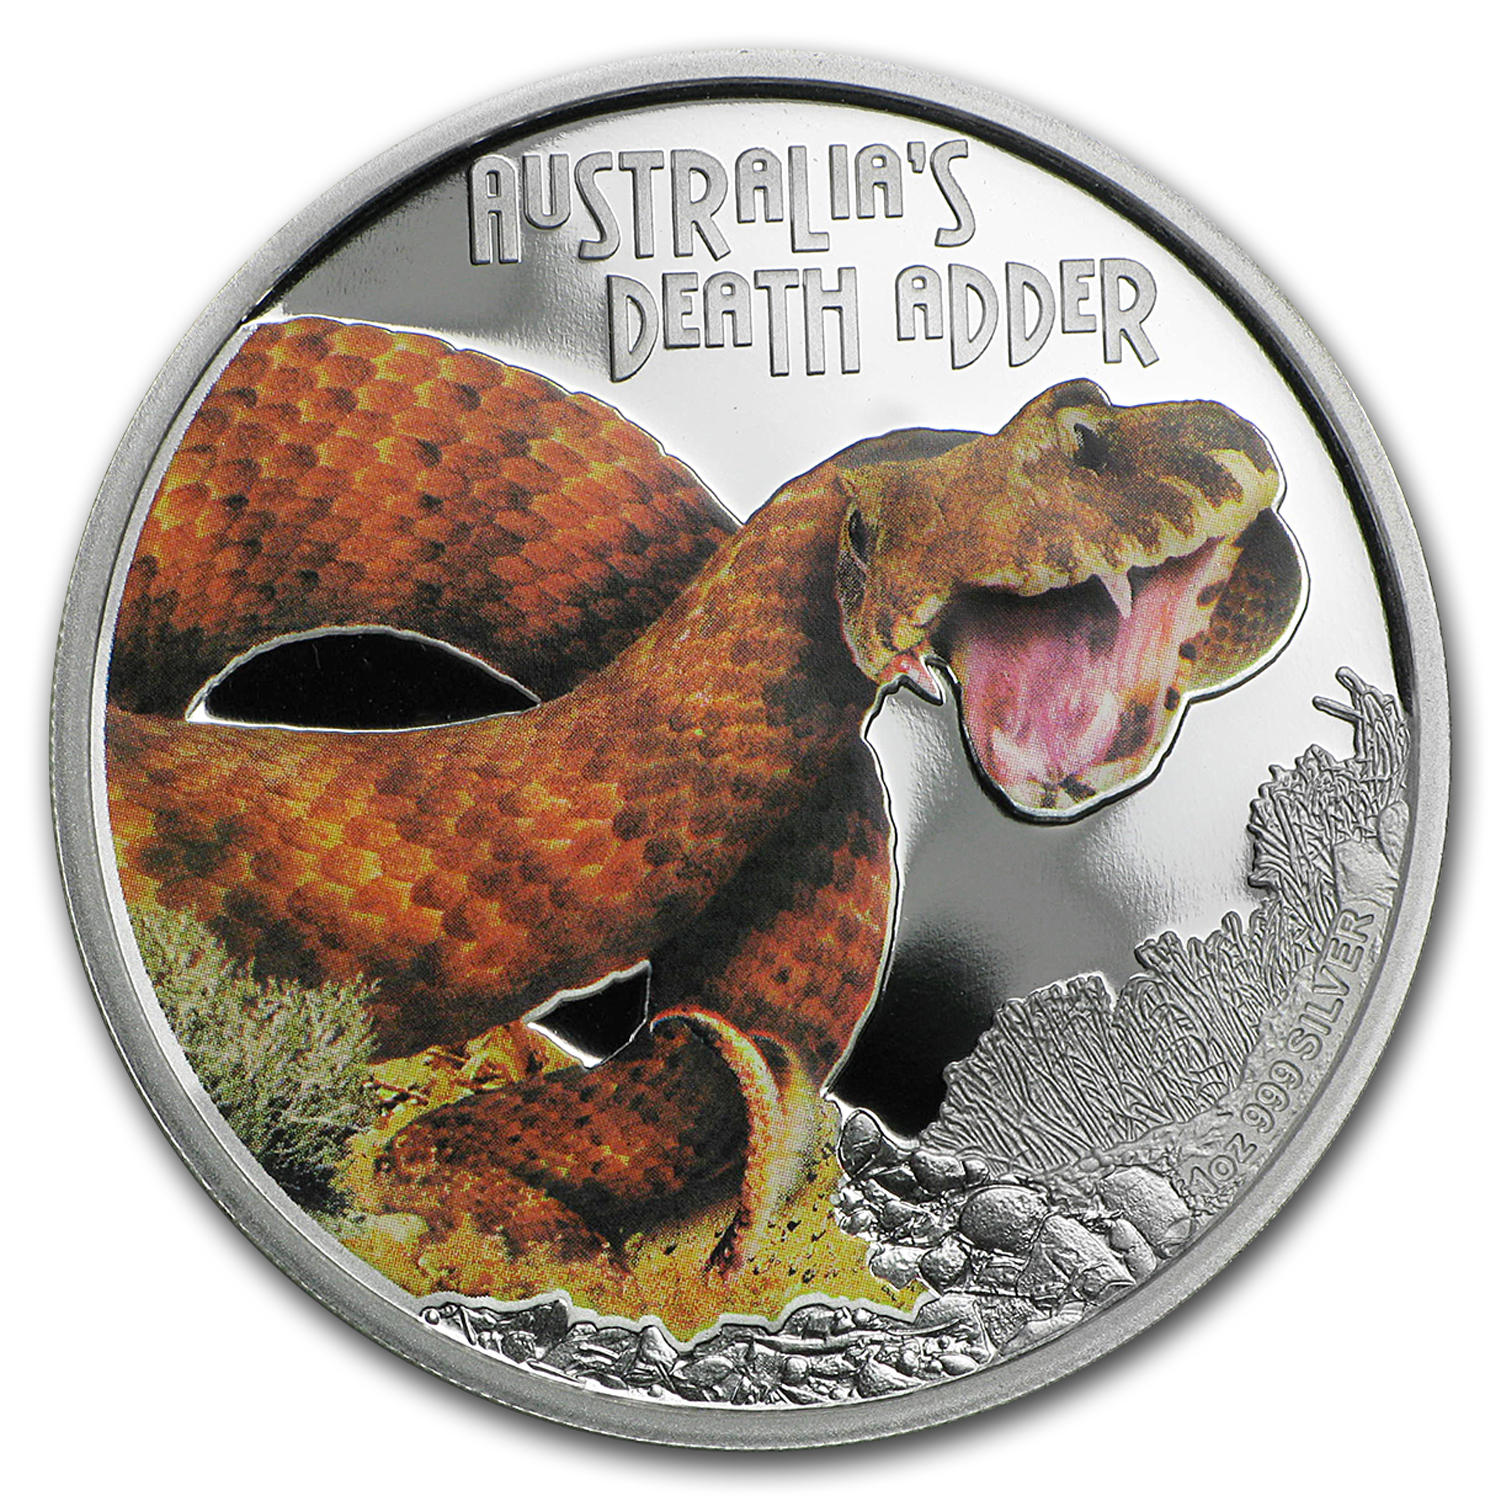 2016 Tuvalu 1 oz Silver Death Adder Proof